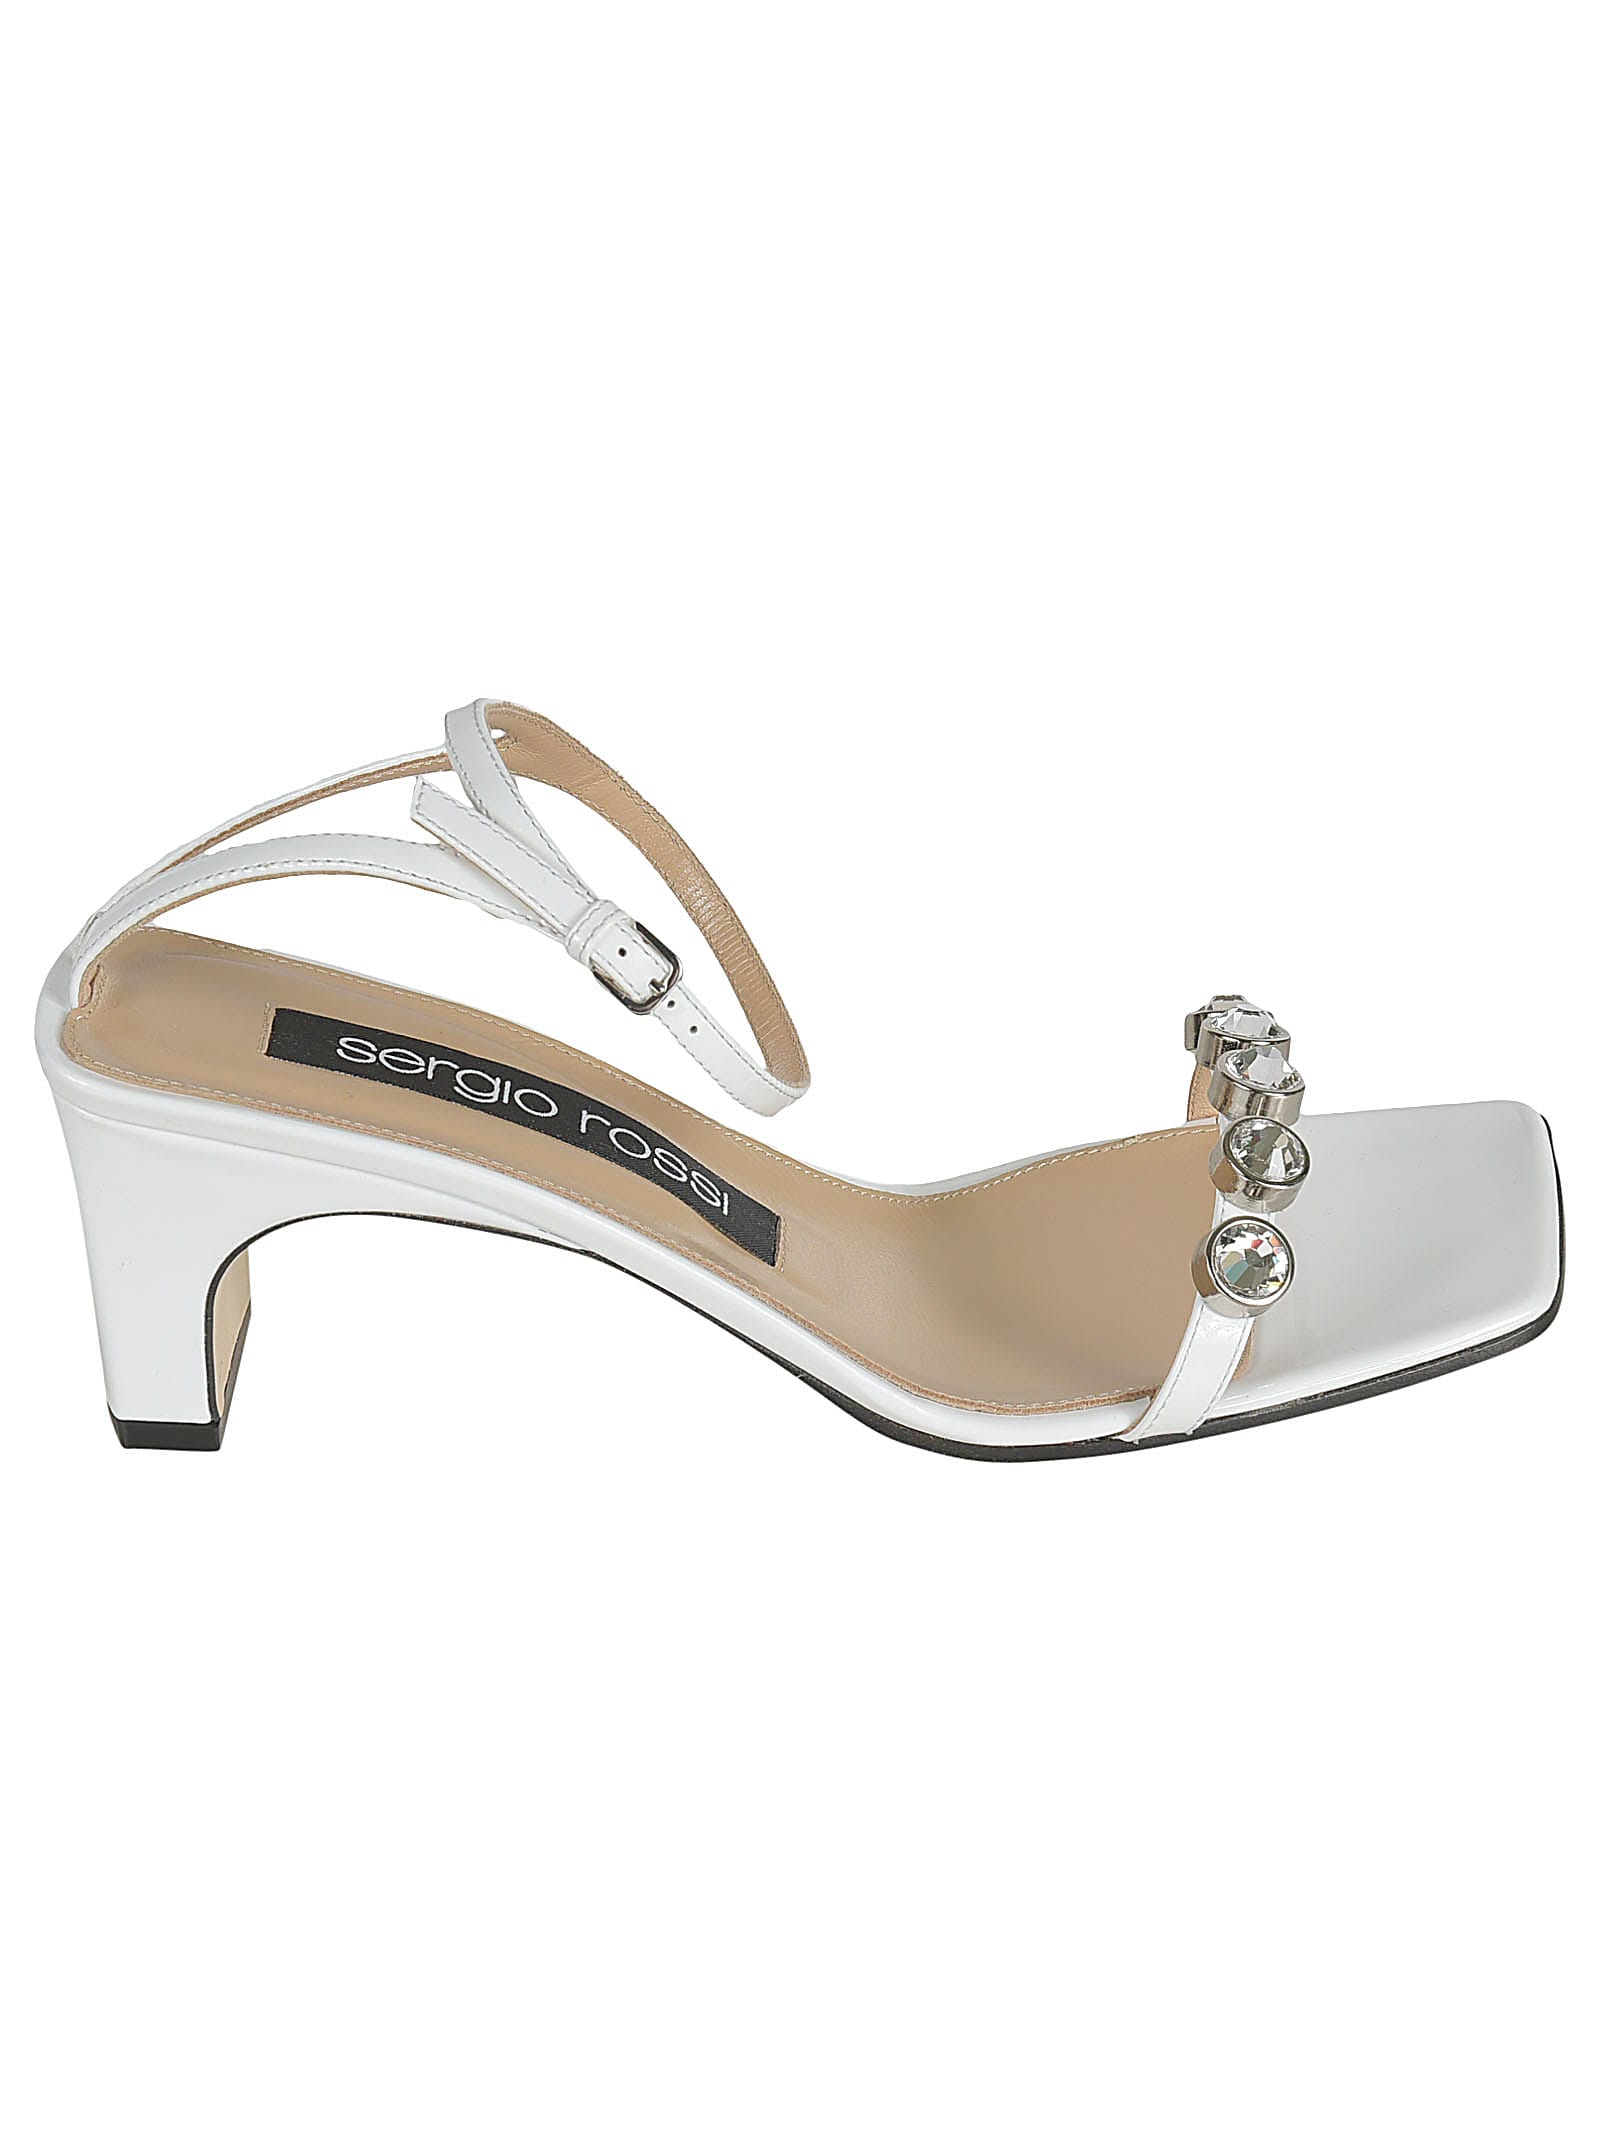 Buy Sergio Rossi Crystal Embellished Sandals online, shop Sergio Rossi shoes with free shipping